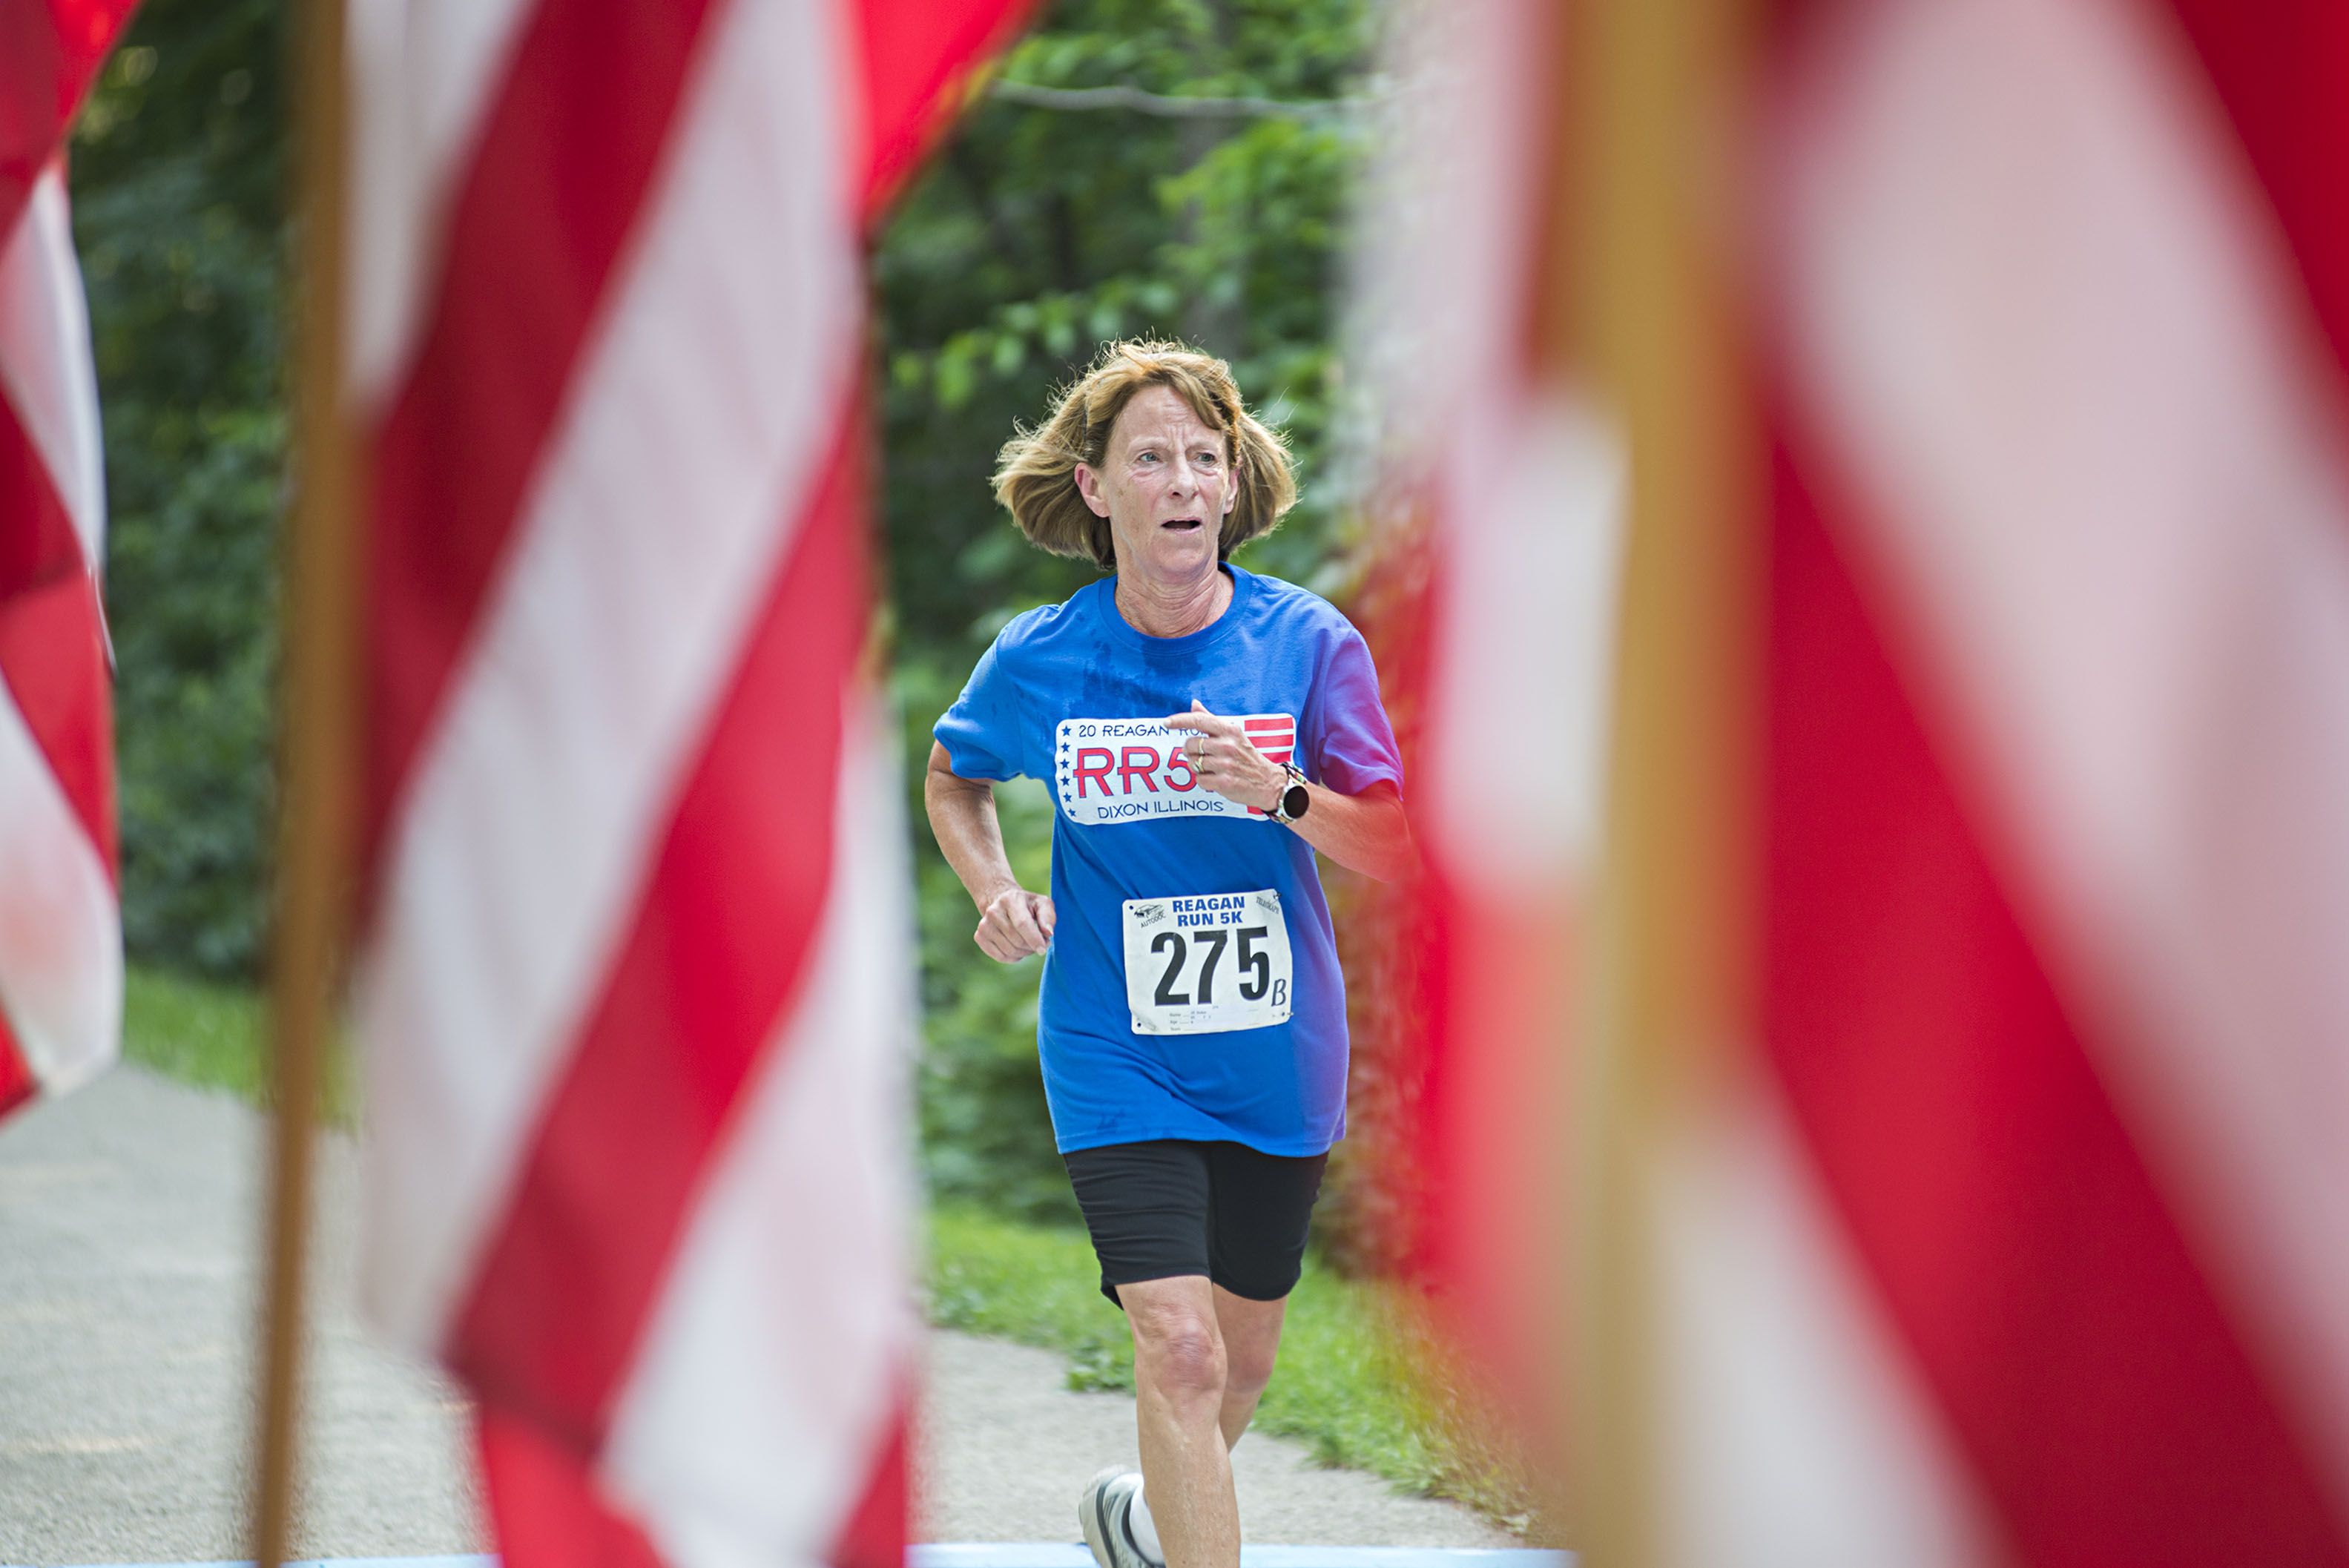 Flags flank the finish line as Jill Stoker of Dixon completes her race.